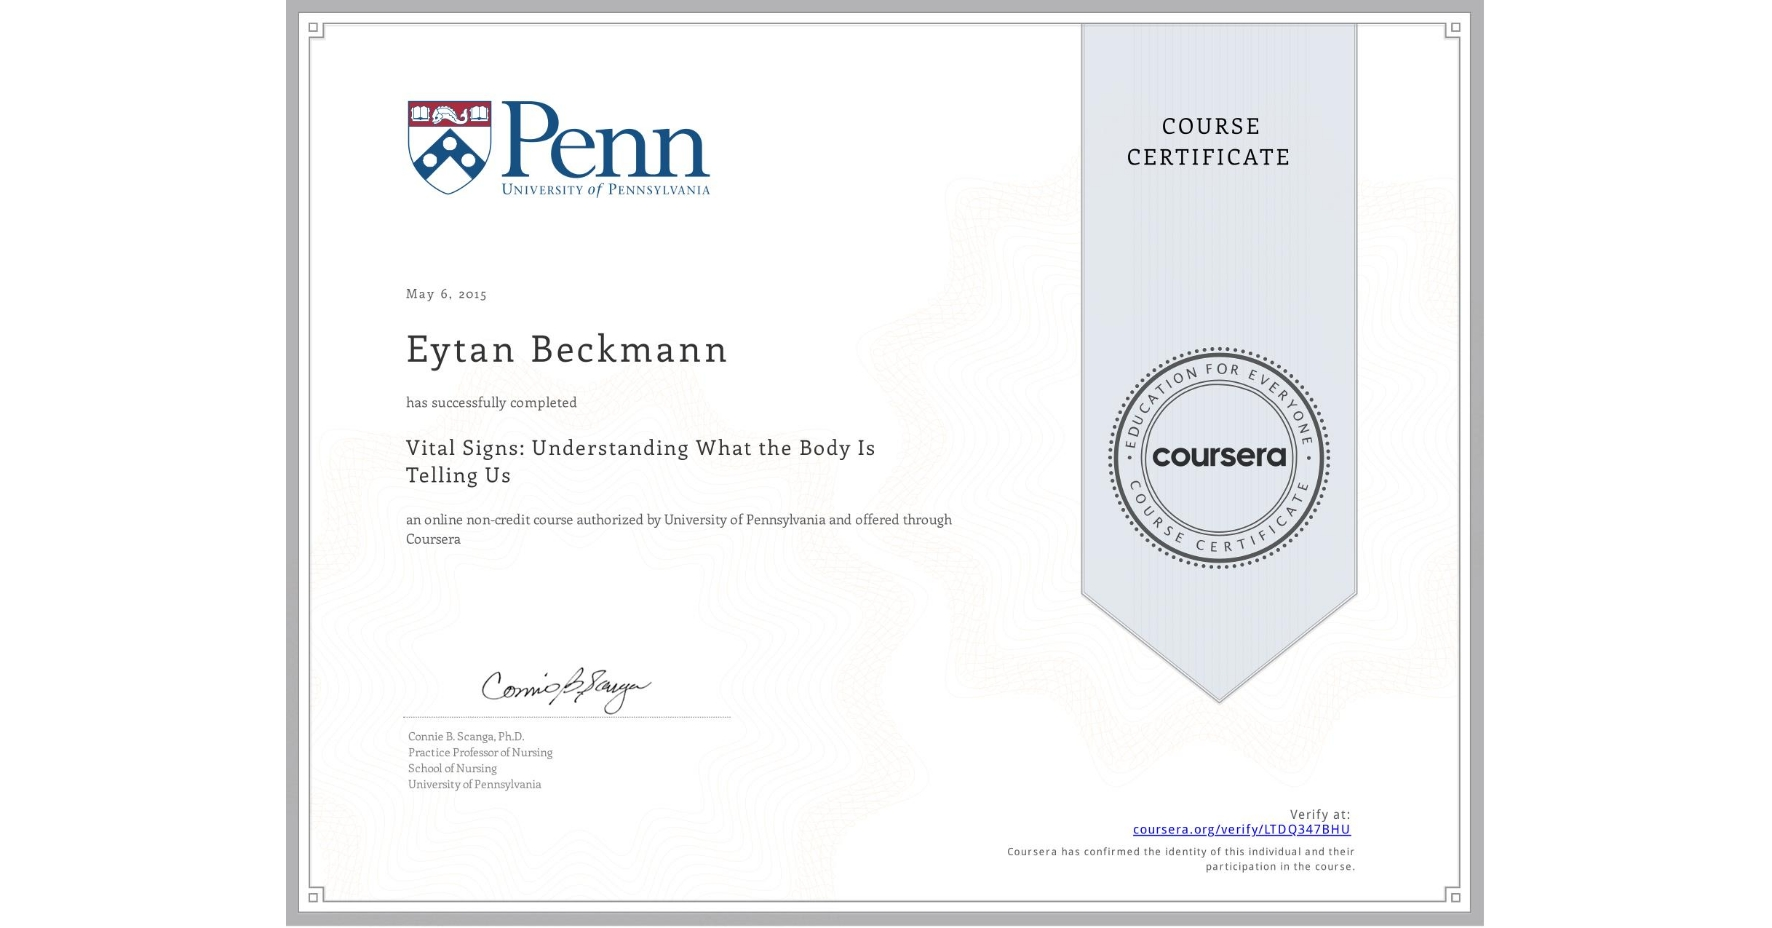 View certificate for Eytan Beckmann, Vital Signs: Understanding What the Body Is Telling Us, an online non-credit course authorized by University of Pennsylvania and offered through Coursera